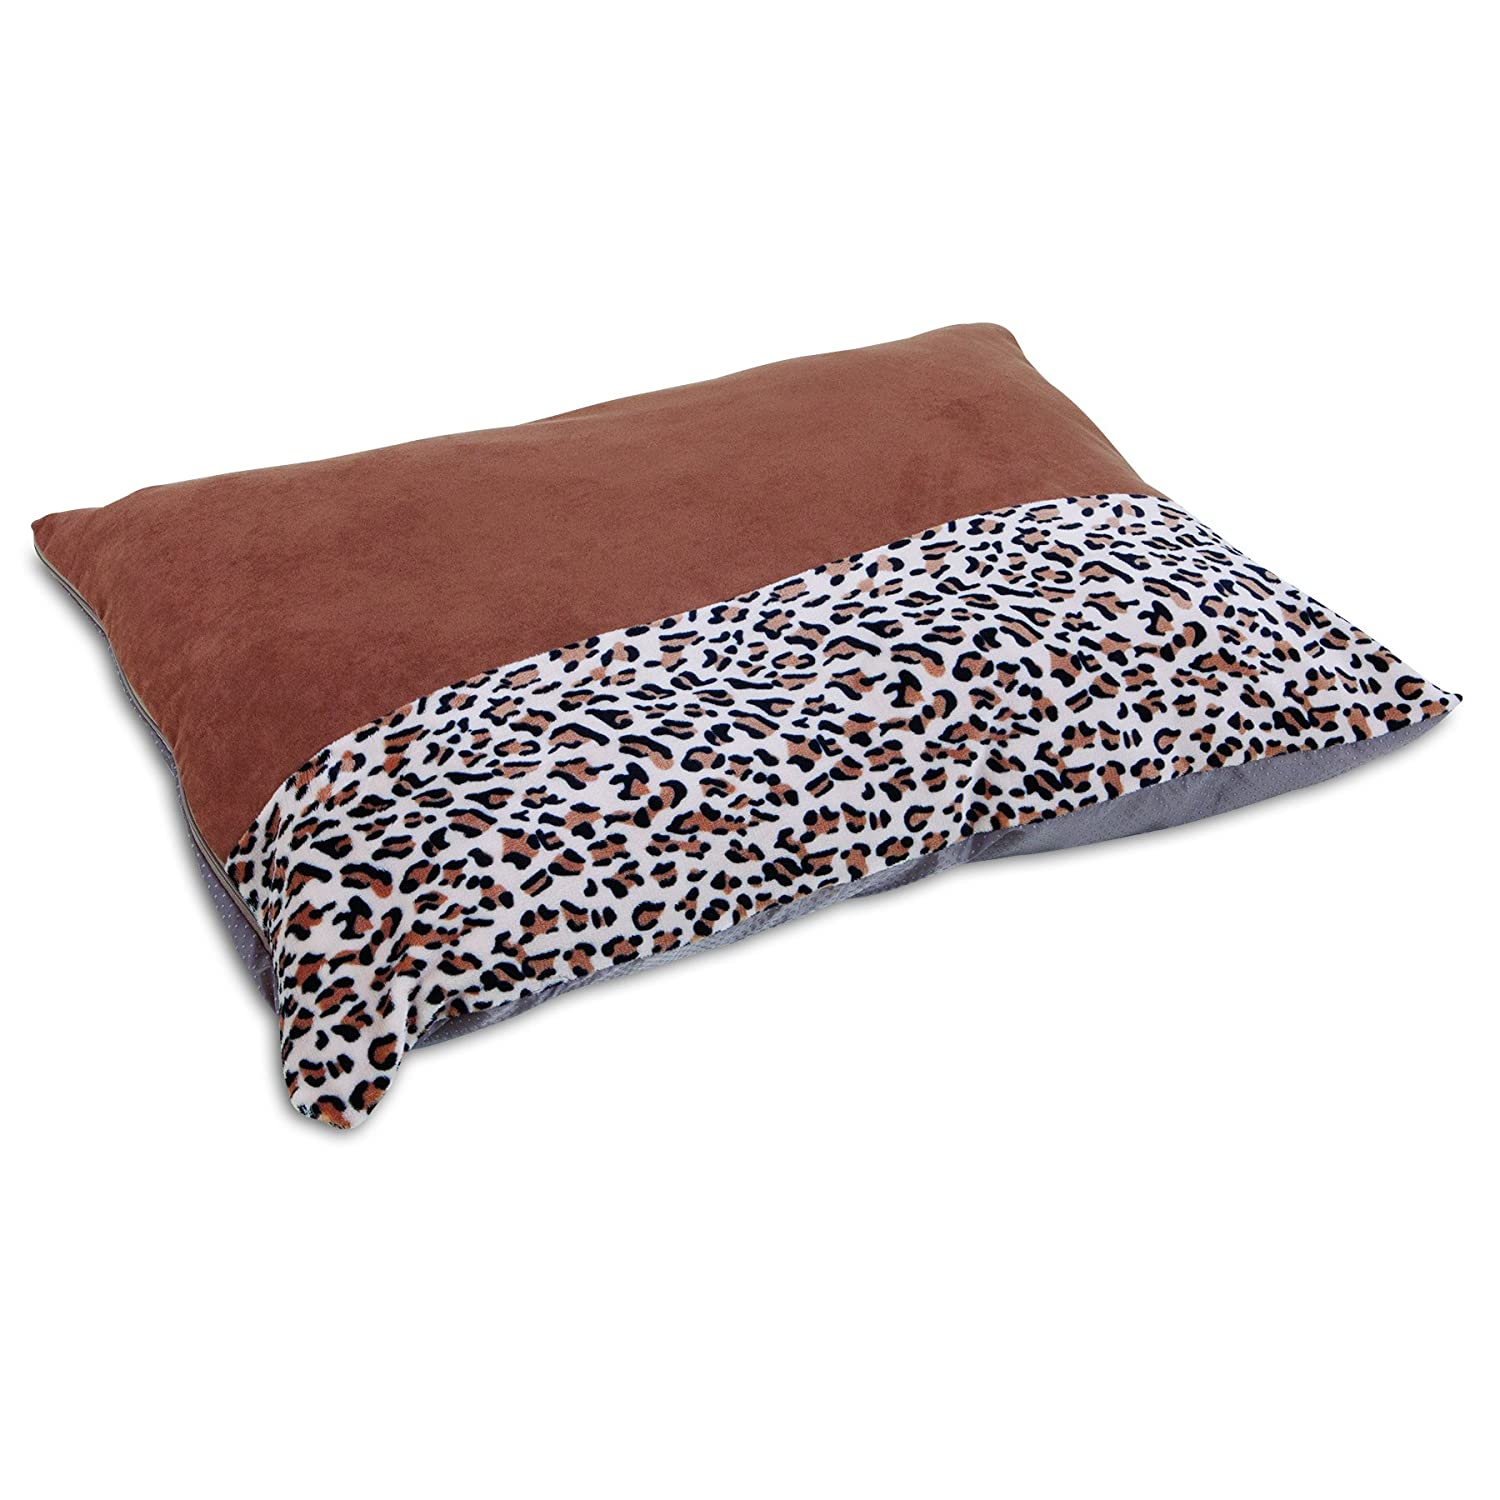 27 X 36 Aspen Pet Animal Print Knife Edge Pillow Bed, 27  x 36 , Brown